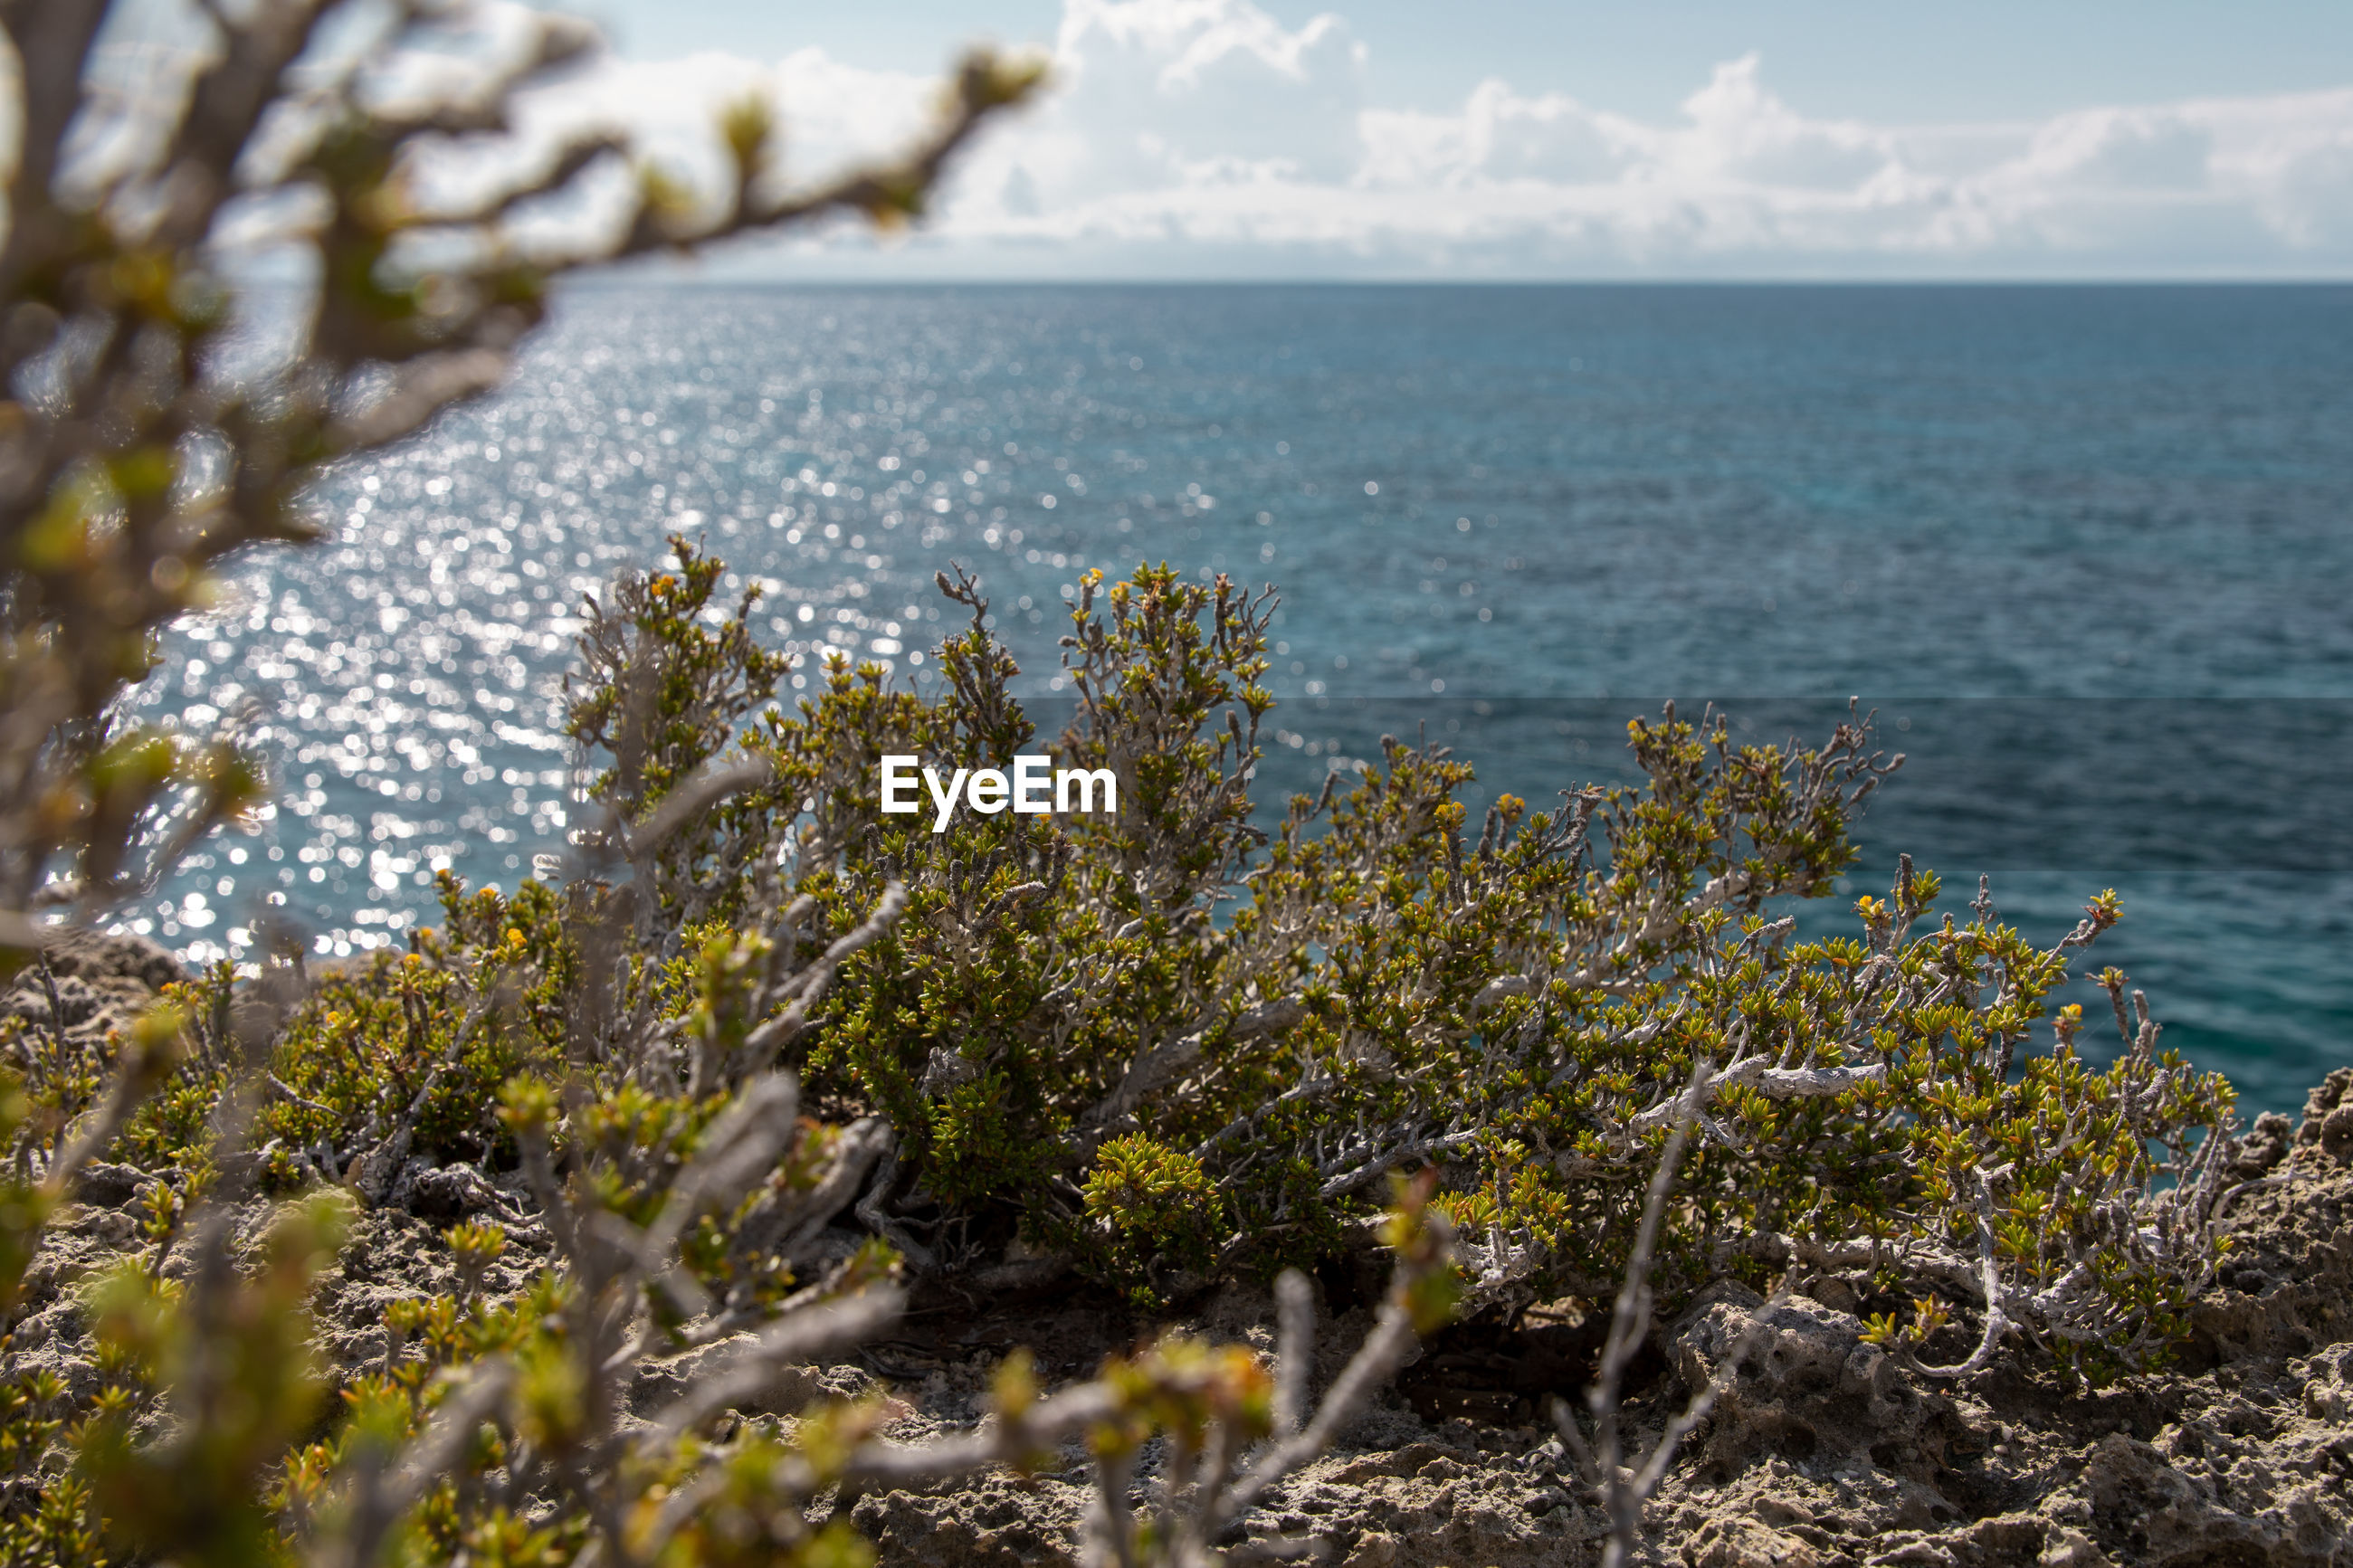 SCENIC VIEW OF SEA AND PLANTS AGAINST SKY